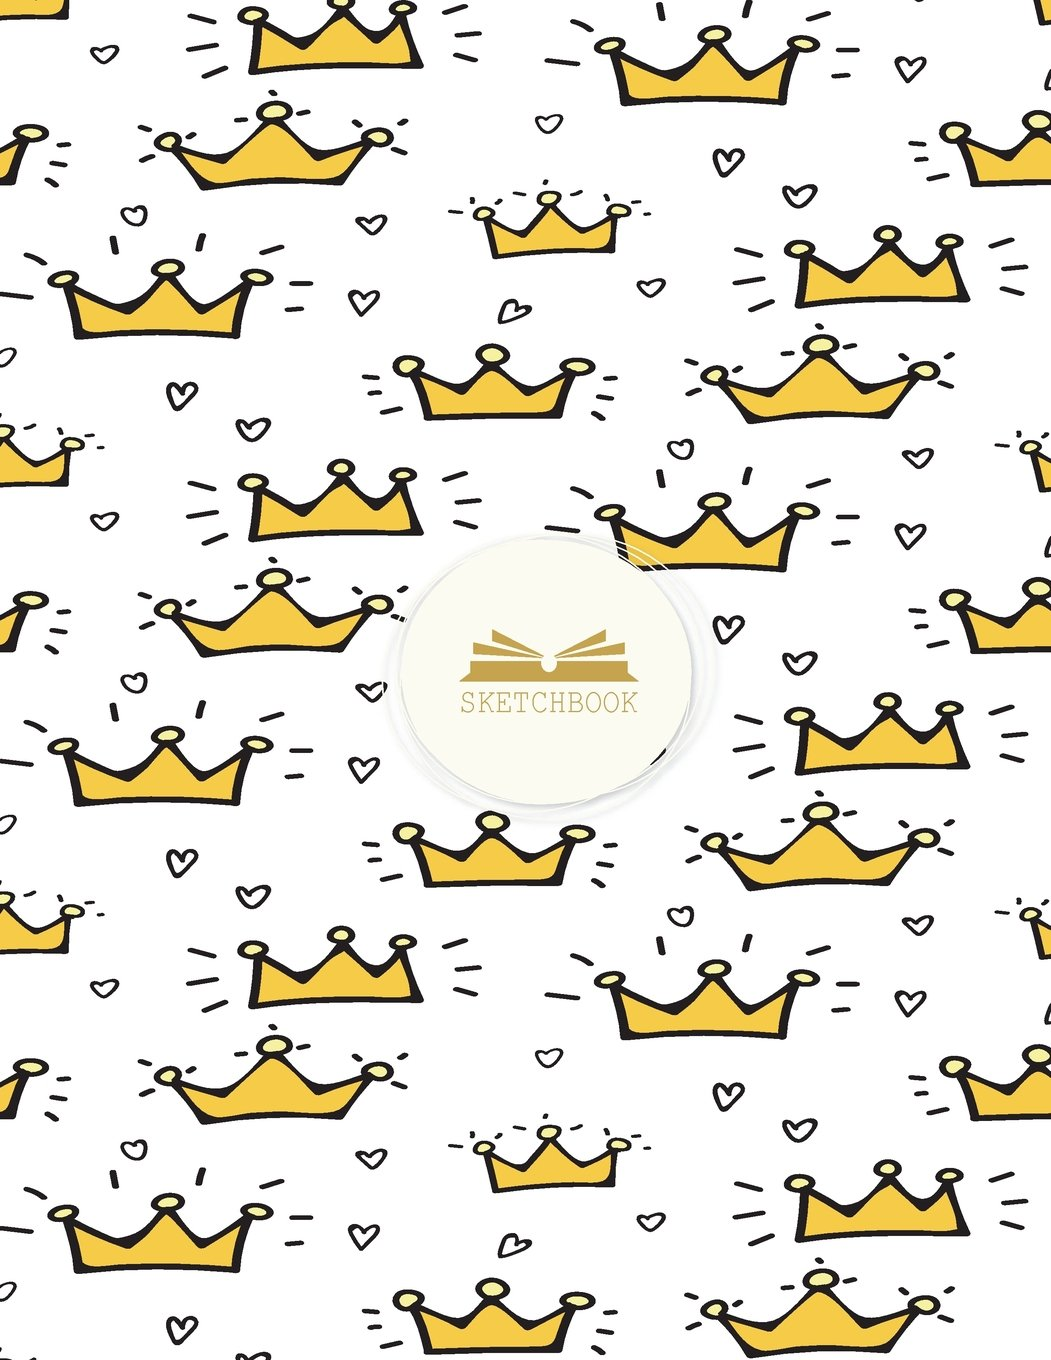 Read Online Sketch book: My crown cover (8.5 x 11)  inches 110 pages, Blank Unlined Paper for Sketching, Drawing , Whiting , Journaling & Doodling (My crown ... (8.5 x 11) inches, 110 pages) (Volume 38) pdf